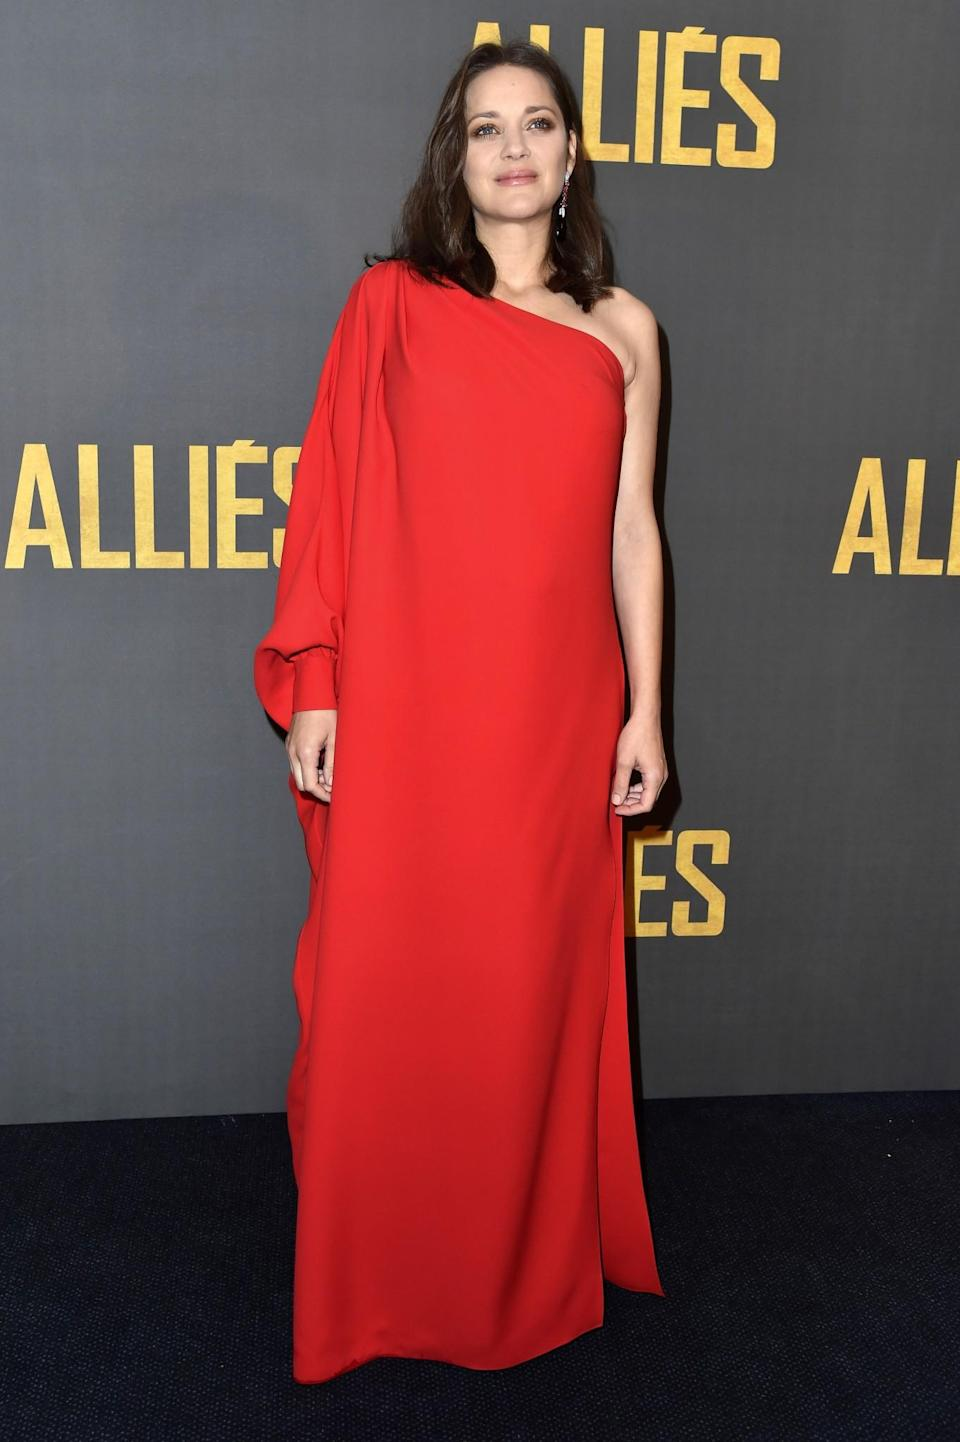 <p>Picking a vibrant shade of red in the style of Marion Cotillard will give you some much-needed confidence. It'll look heavenly in a loose-fitting style. <i>[Photo: Getty]</i> </p>